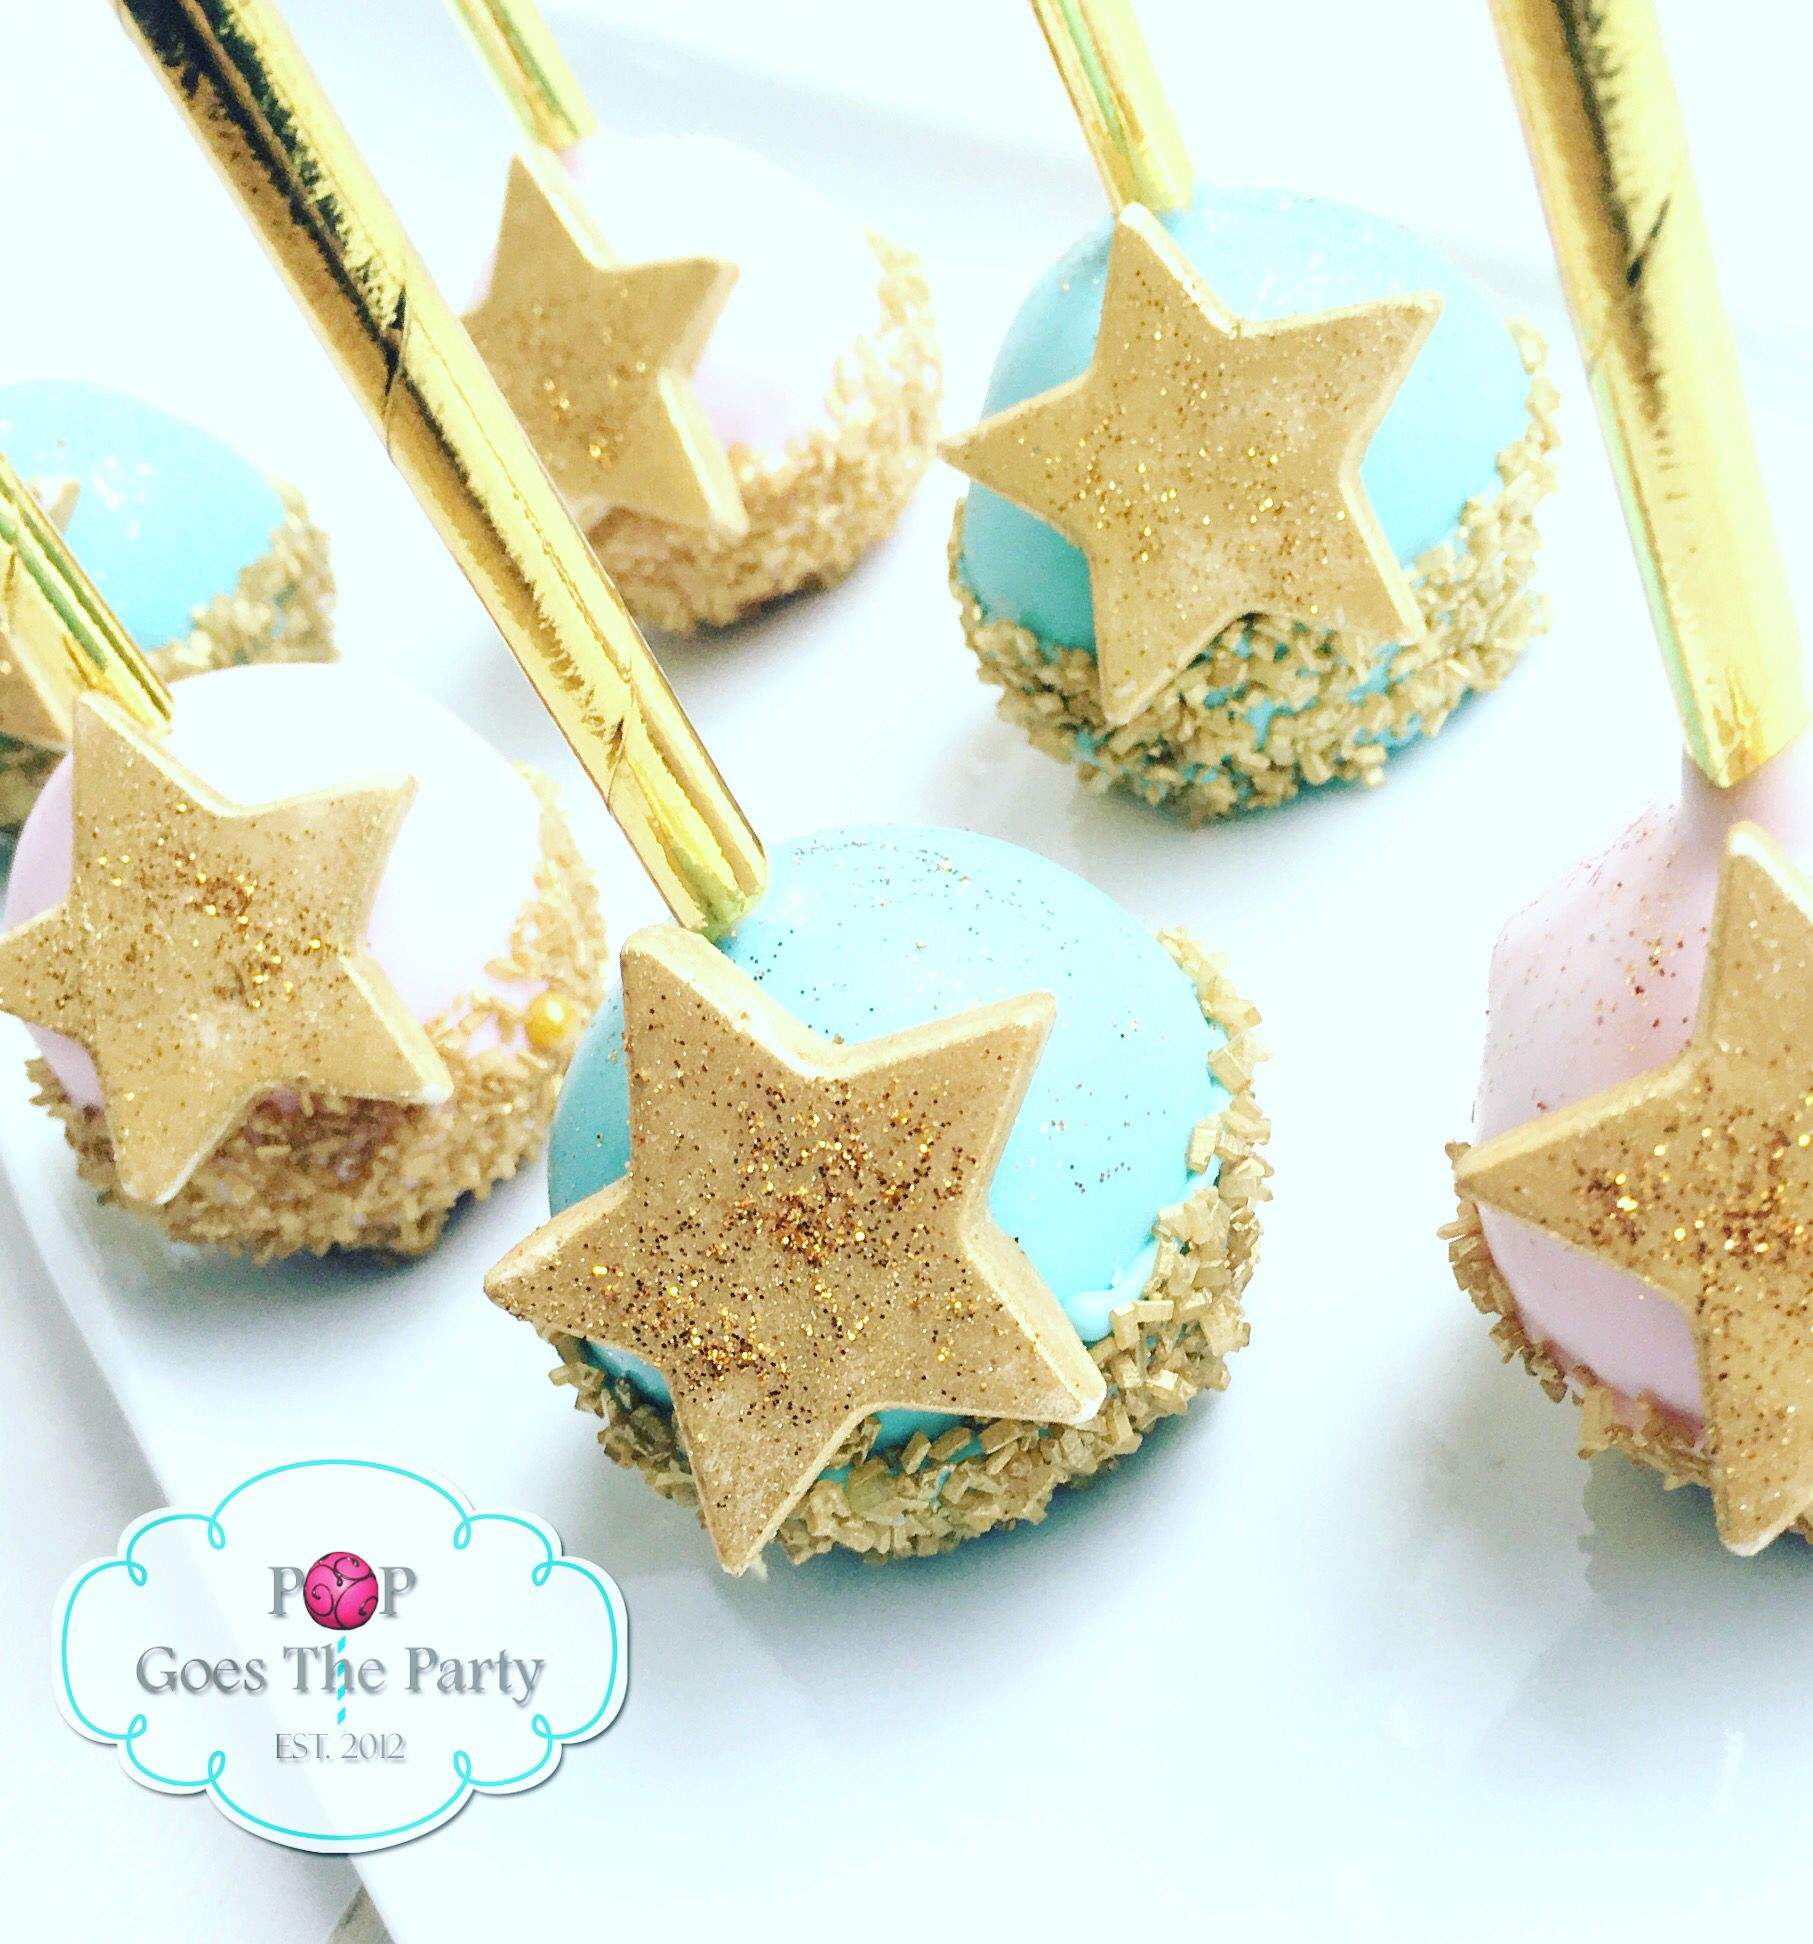 1000 Ideas About Twinkle Twinkle On Pinterest: Twinkle Twinkle Little Star Gender Reveal Cake Pops